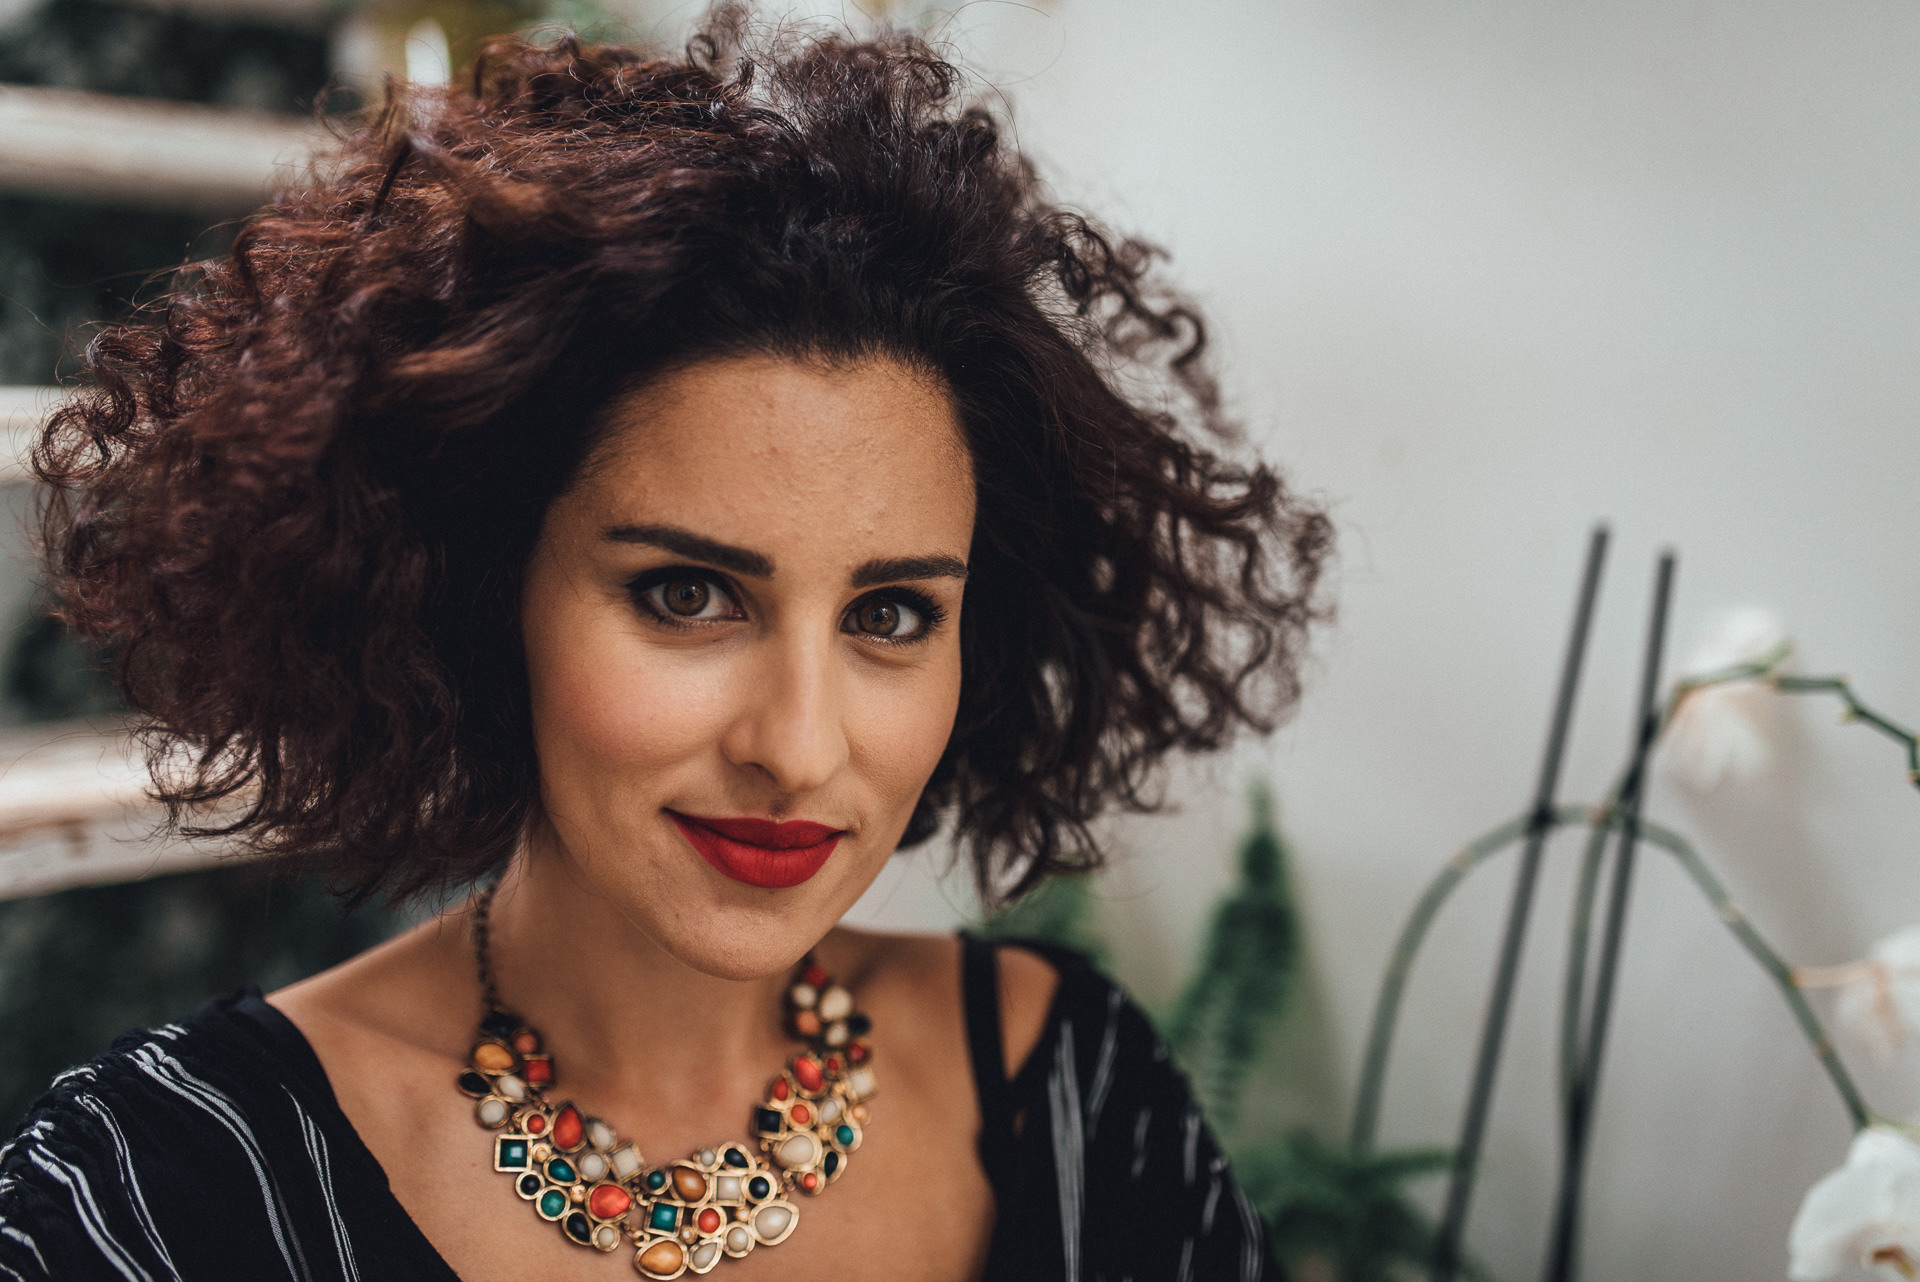 Headshot of curly haired woman - Creative portrait photography, London